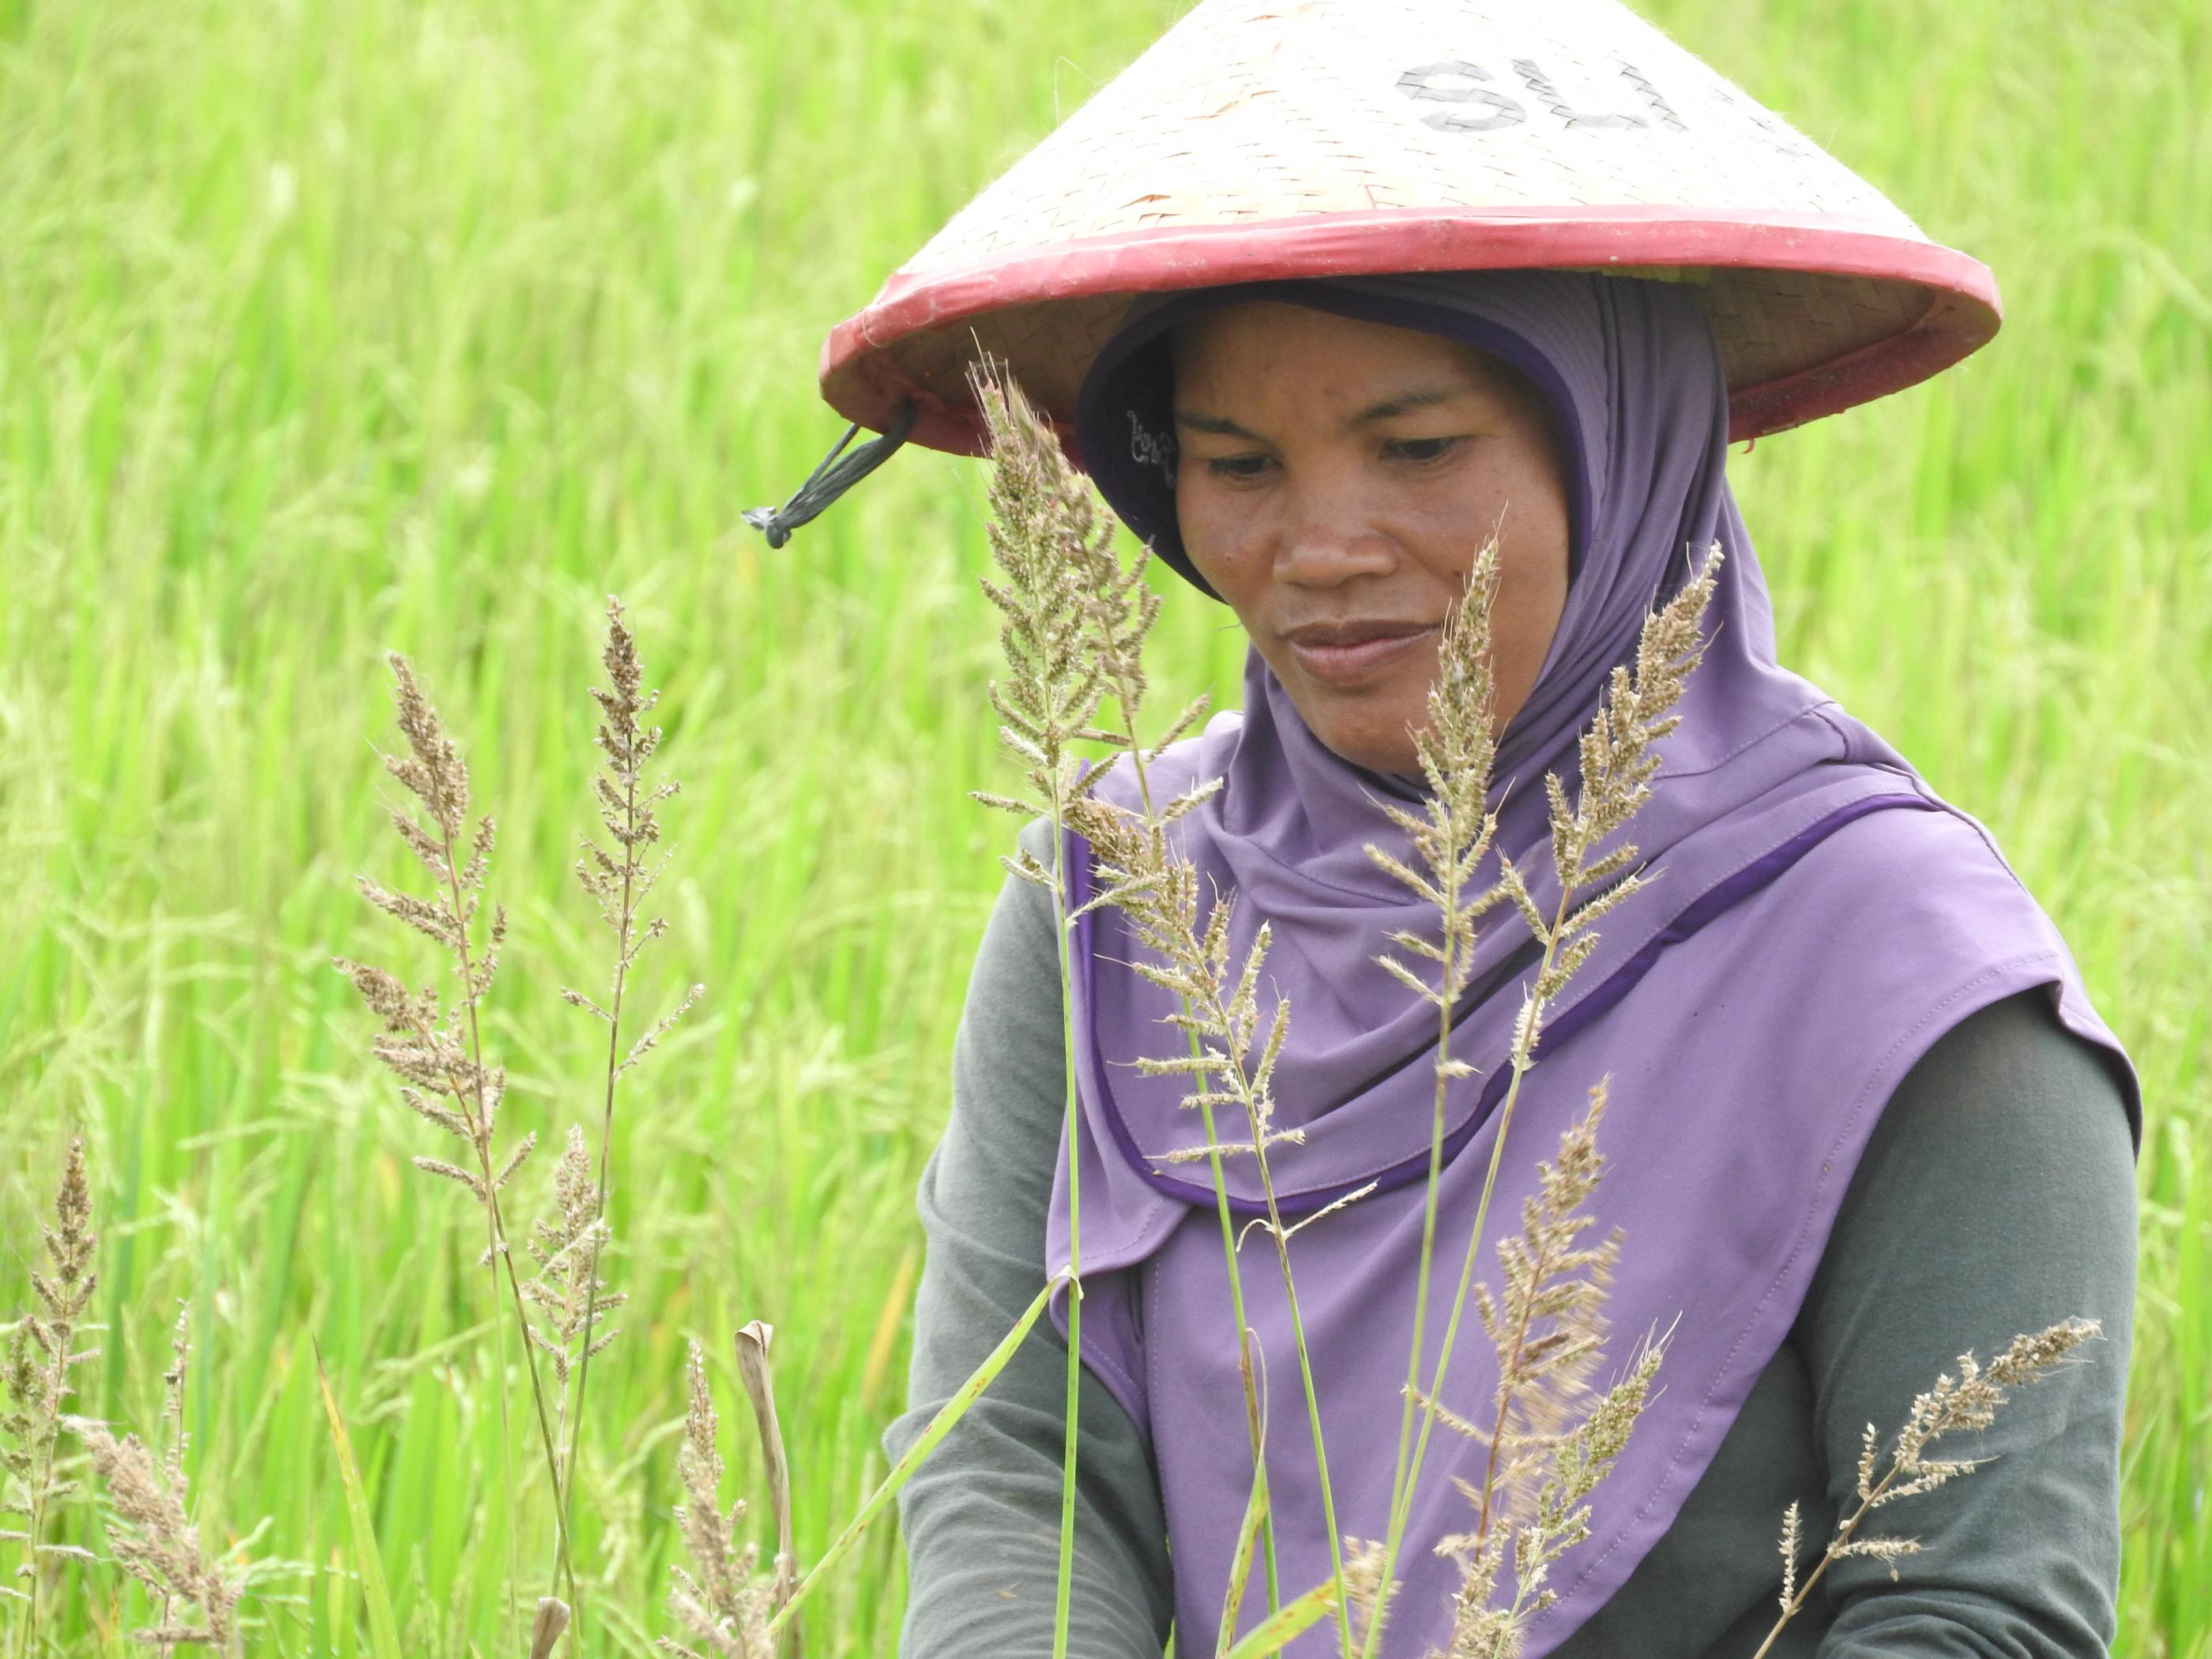 Ramlah is cleaning weeds from the rice fields at the Climate Field School demonstration plot. Photo by Megawati for USAID APIK.